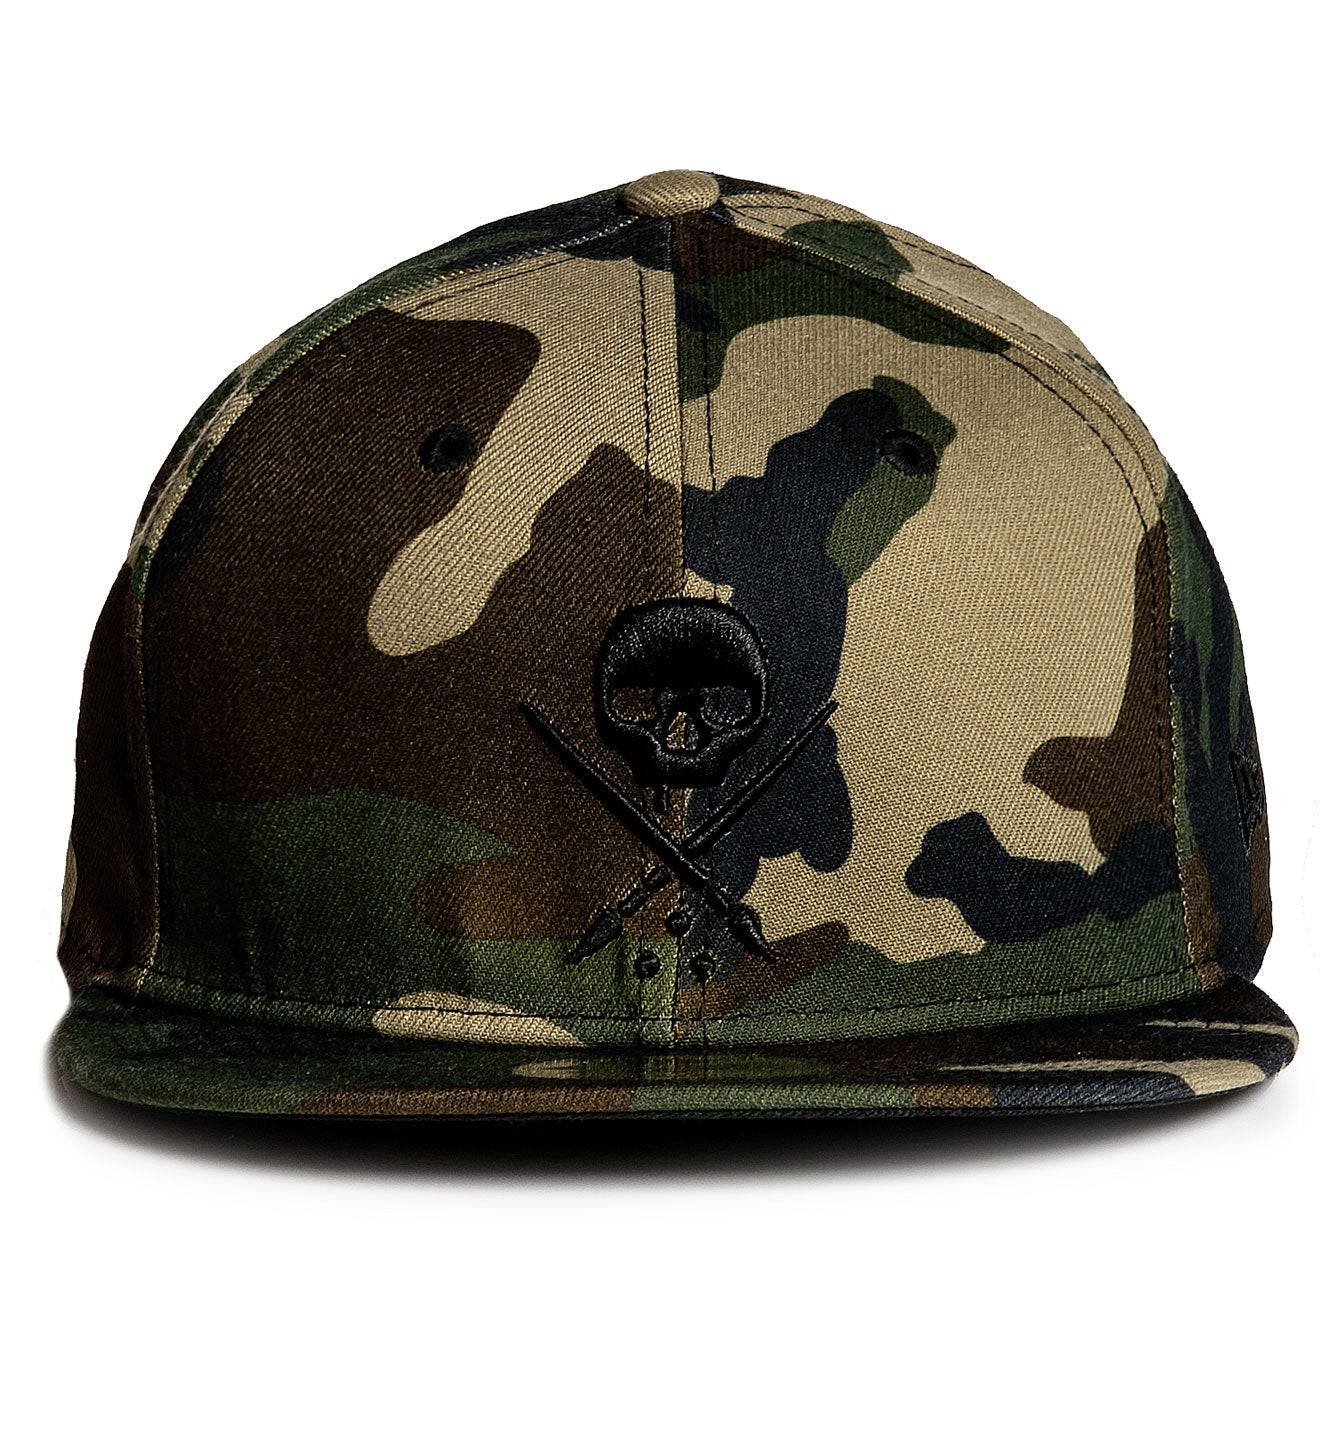 Mens Fitted Badge Stretched Camo, CAMO / 7